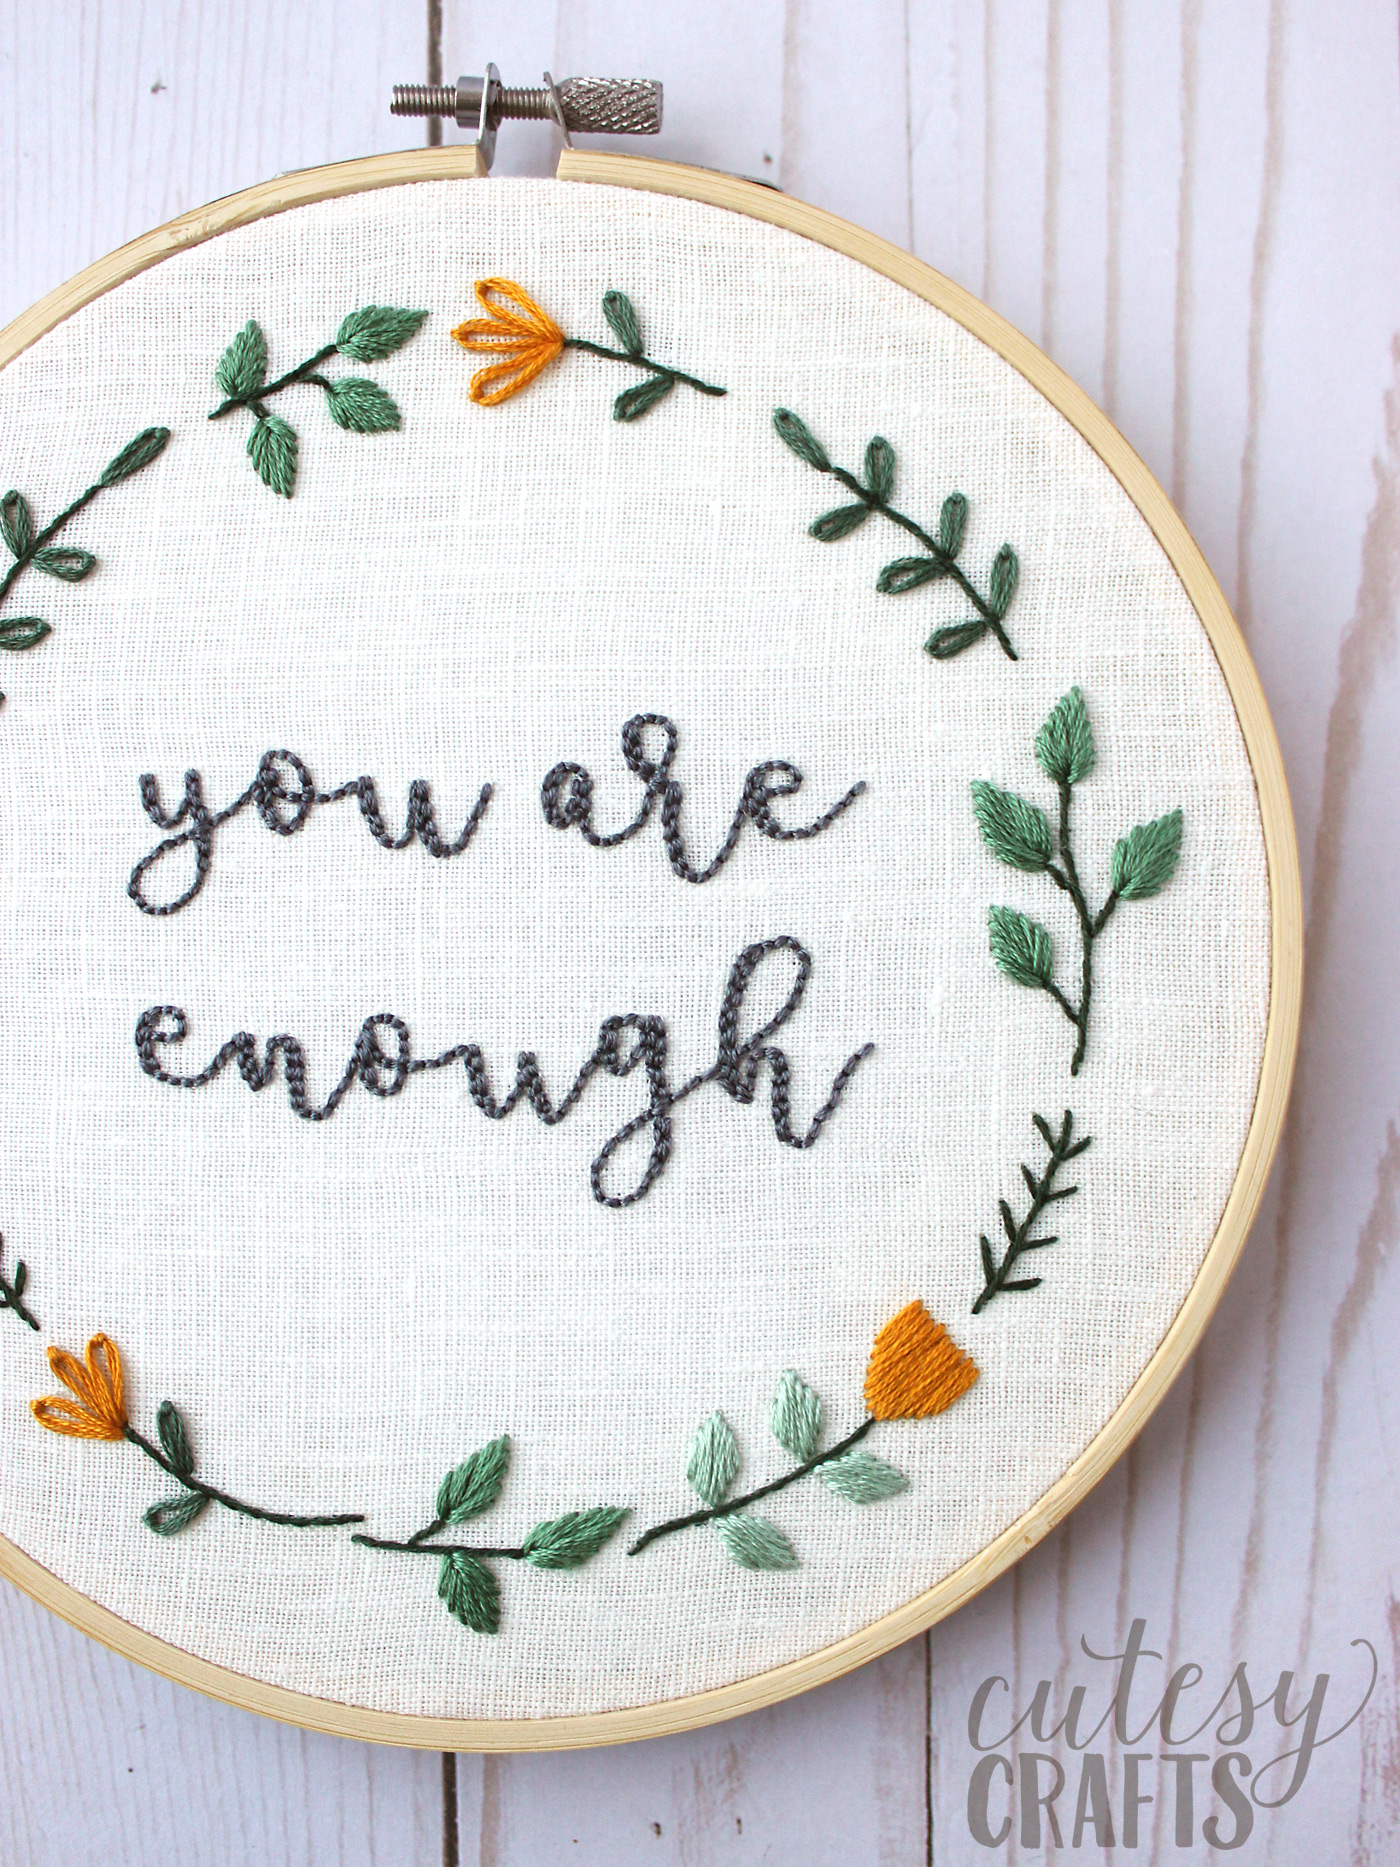 How To Read Embroidery Patterns Free Hand Embroidery Patterns Well Made Heart